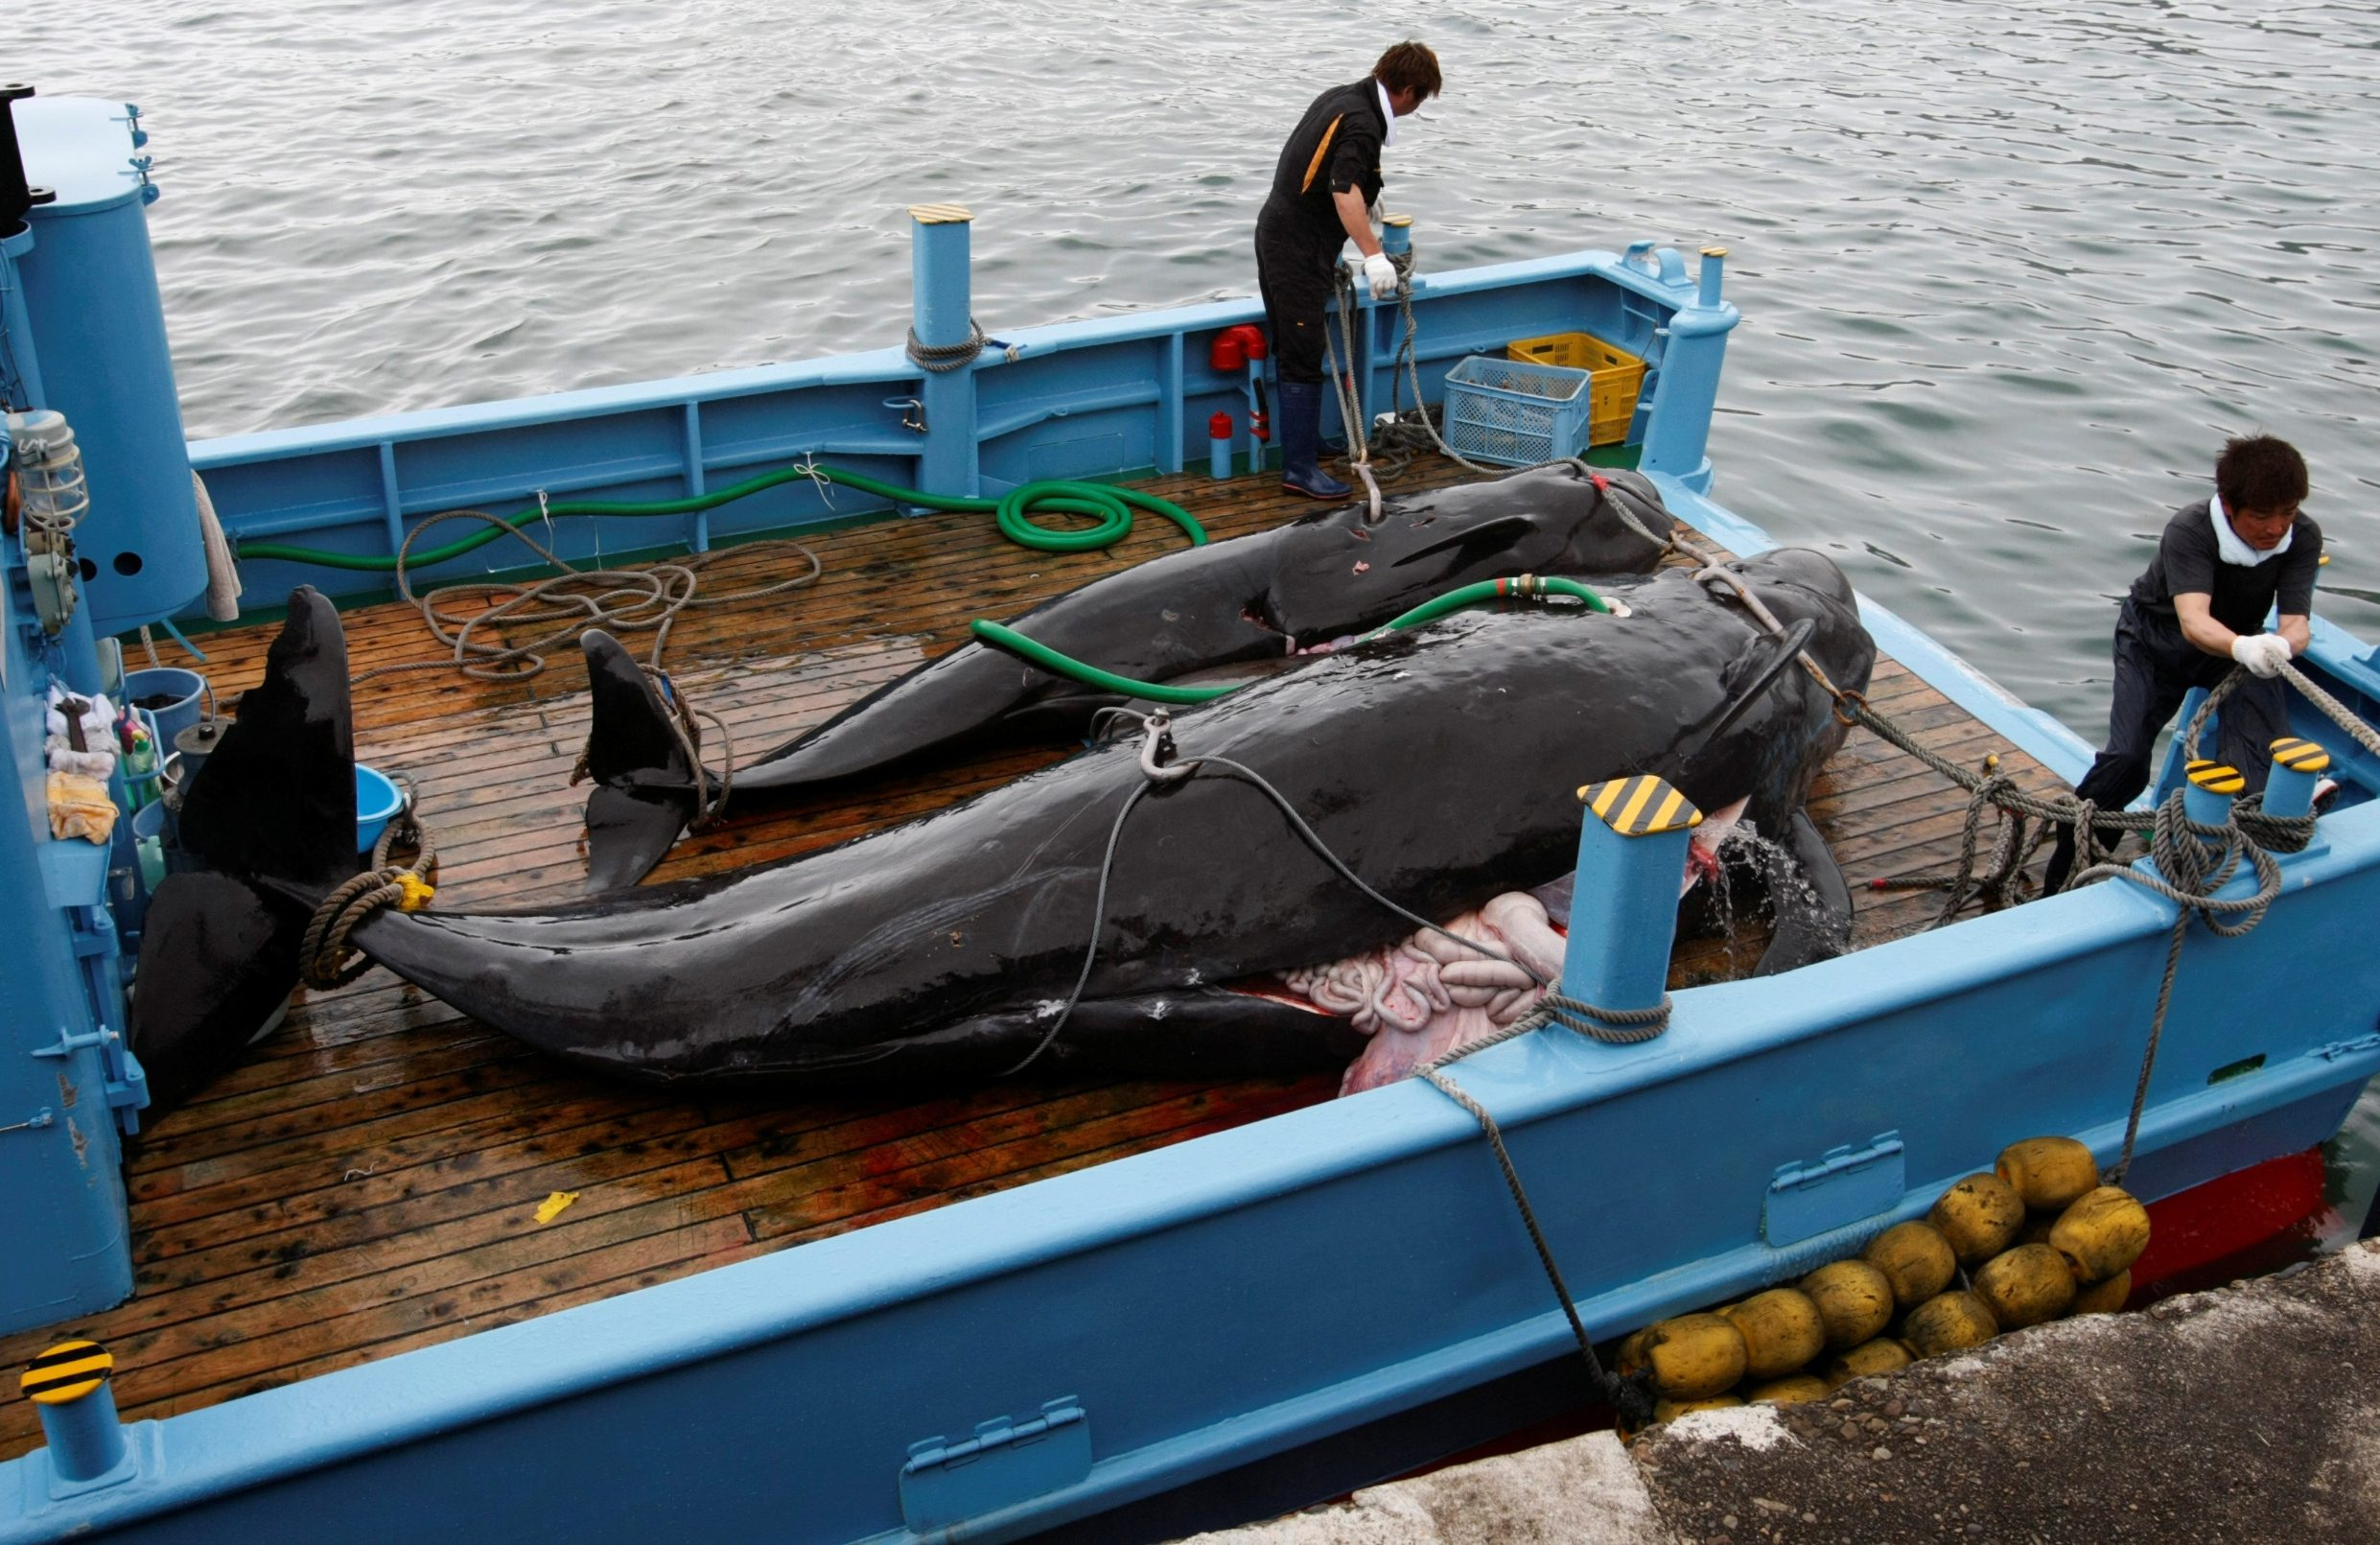 2019-06-24T001626Z_941857567_RC1FD33F1A50_RTRMADP_3_JAPAN-WHALING-DEFIANCE